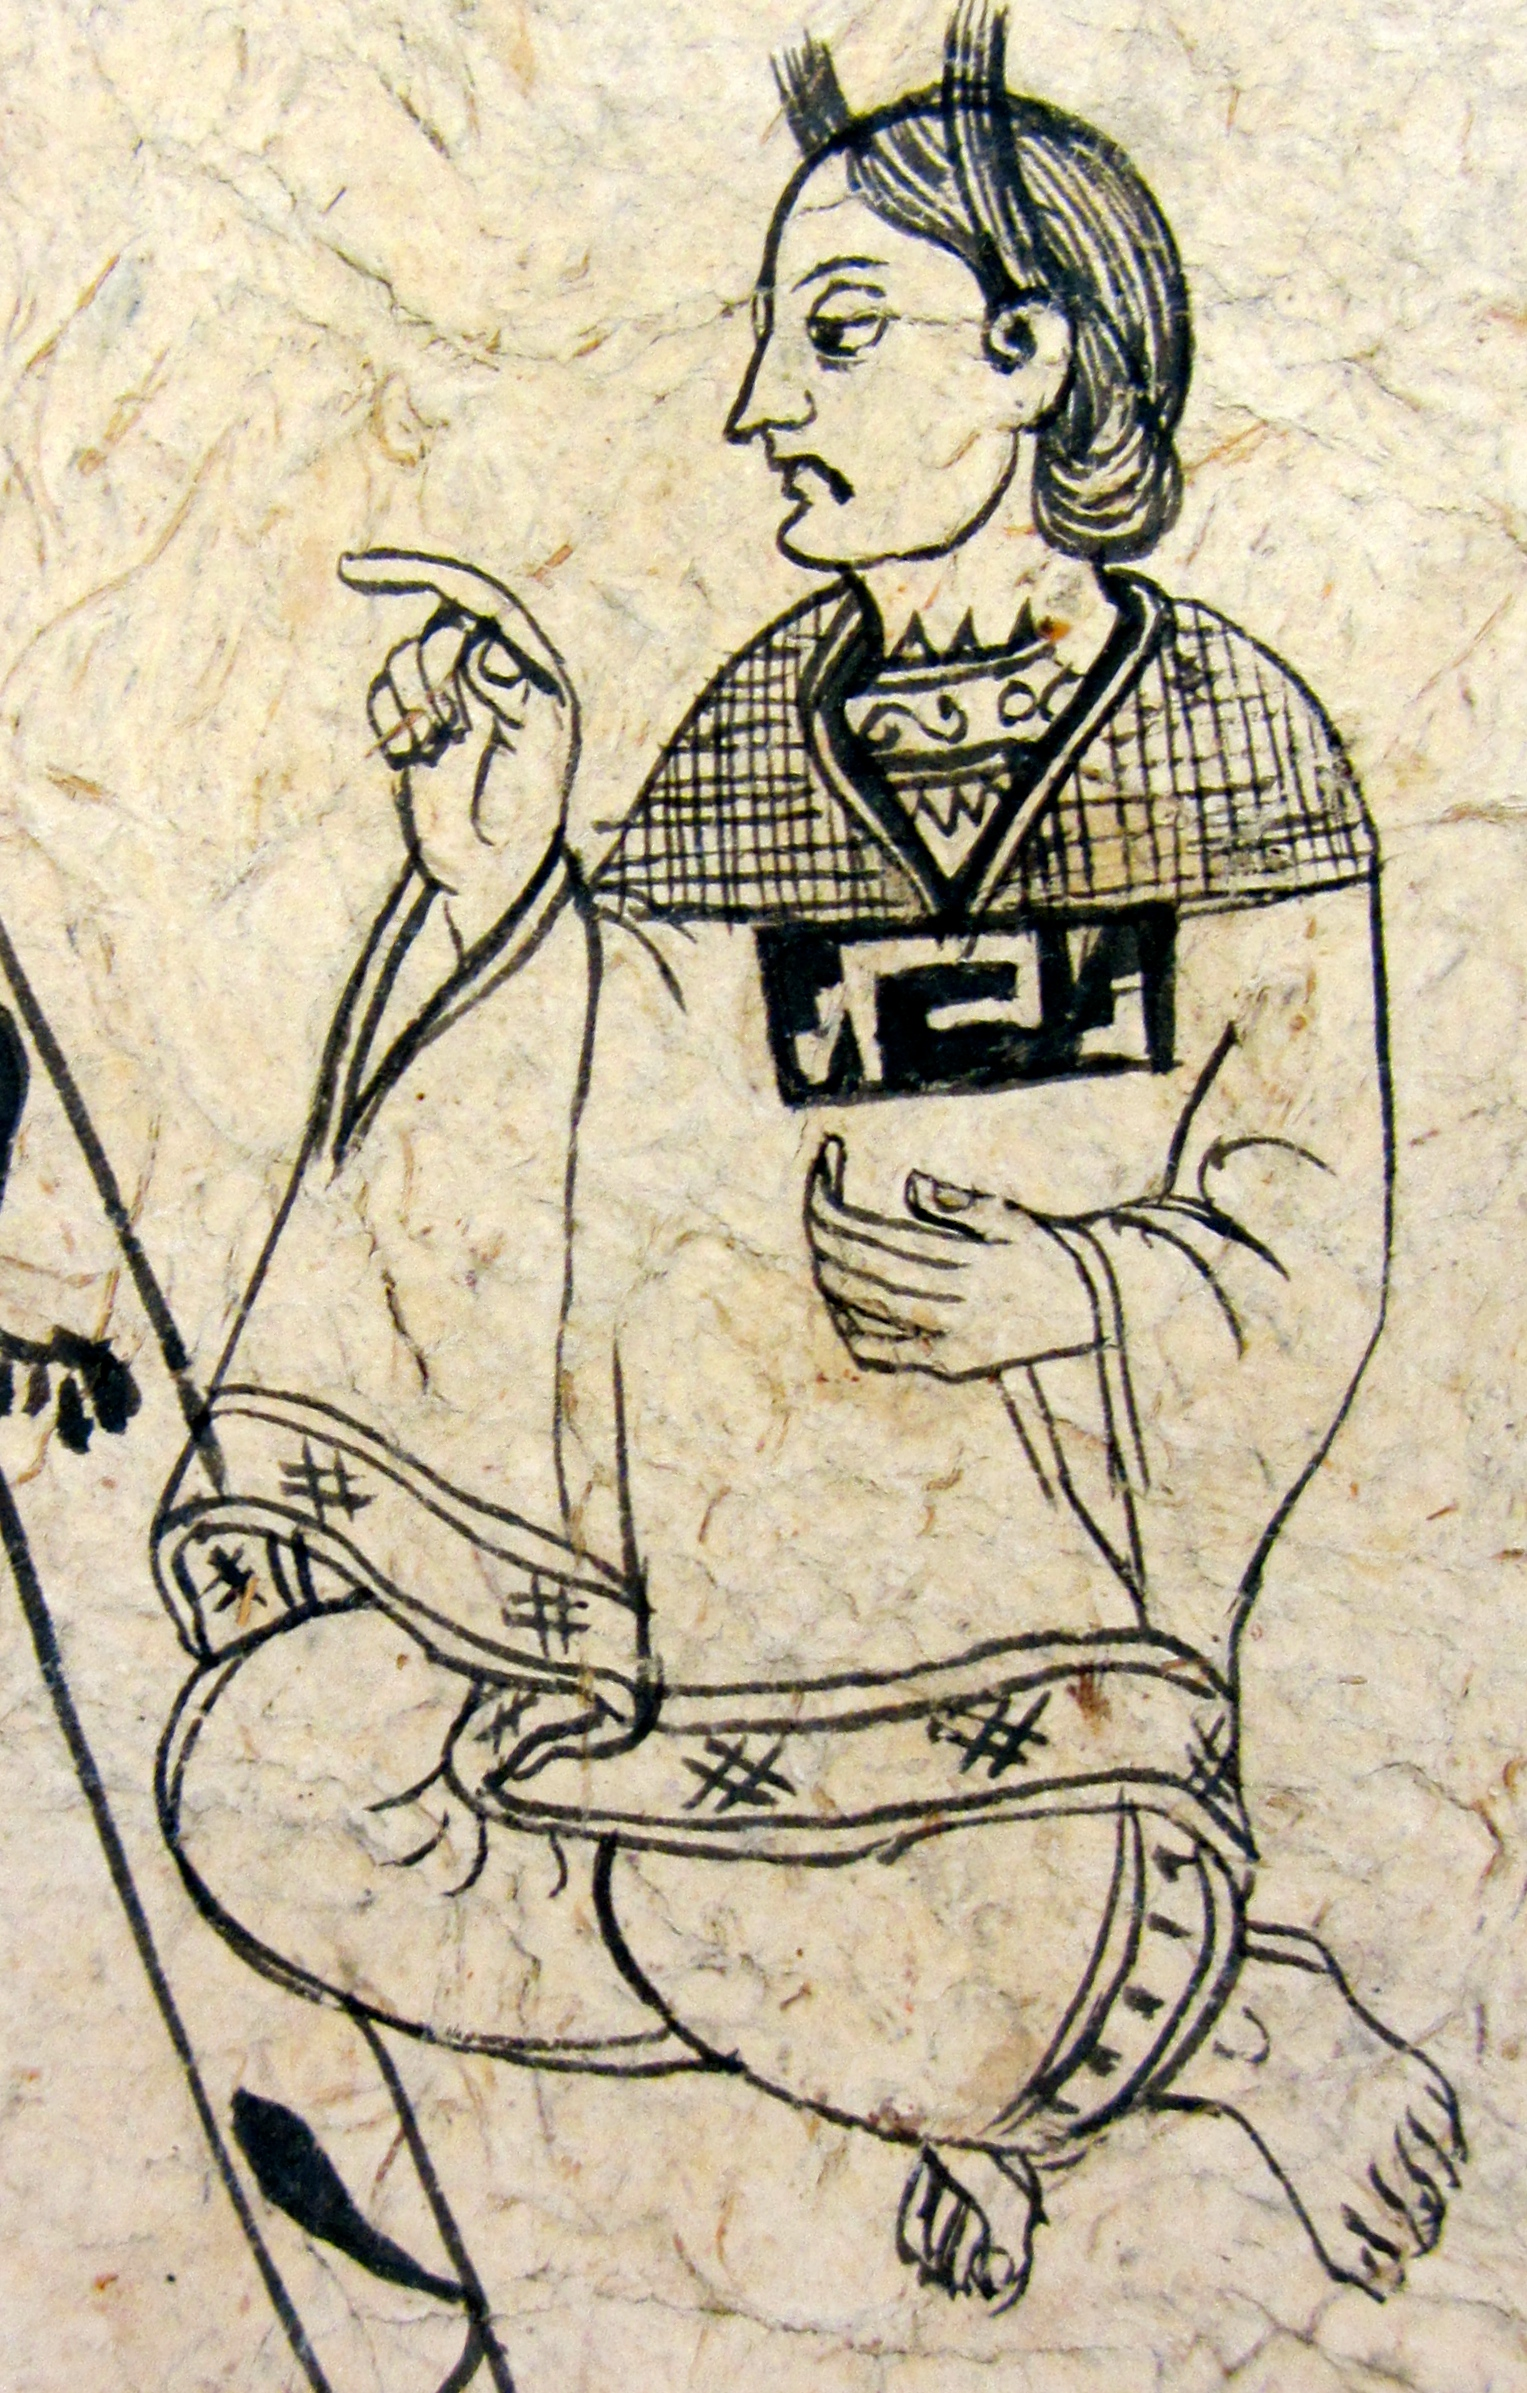 Cihuapilli (indigenous maiden) in a manuscript at the Benson Library at UT Austin, bundled with the Lienzo de Tlaxcala fragment. (S. Wood photos 5/30/2014)